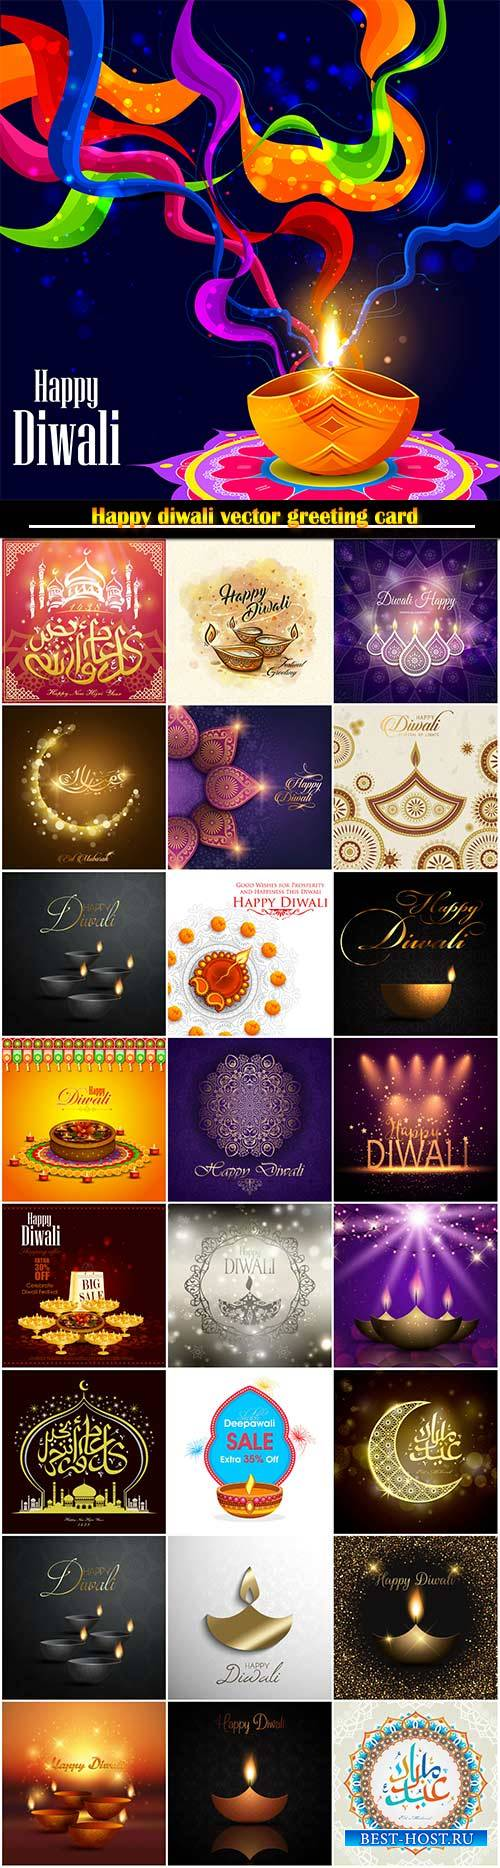 Happy diwali vector greeting card # 5